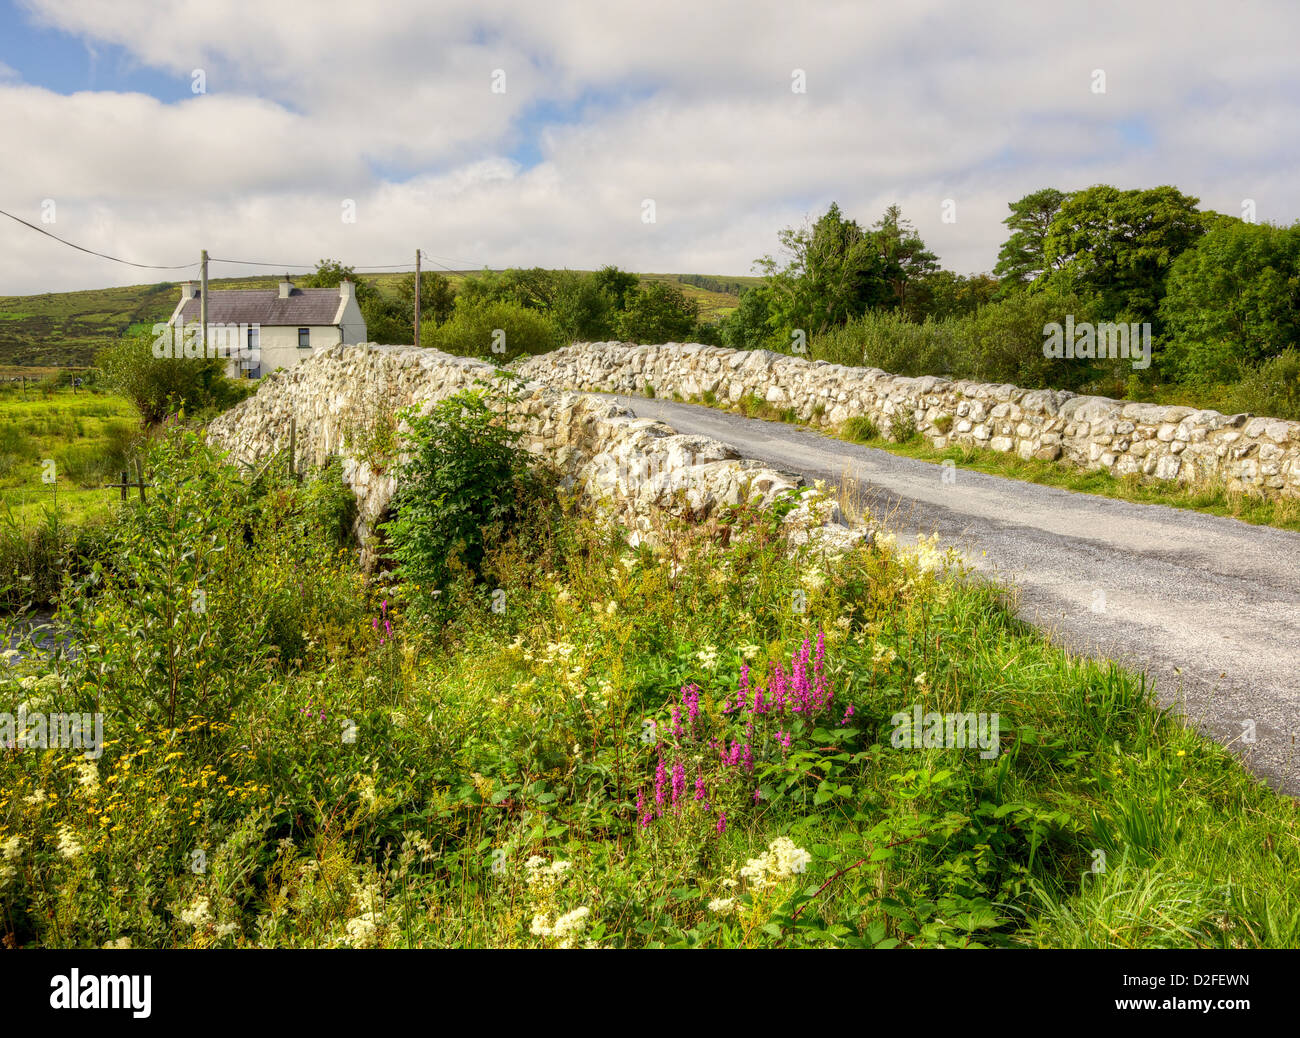 The historic Quiet Man Bridge in County Galway, Ireland, featured in the 1950s film, 'The Quiet Man'. - Stock Image